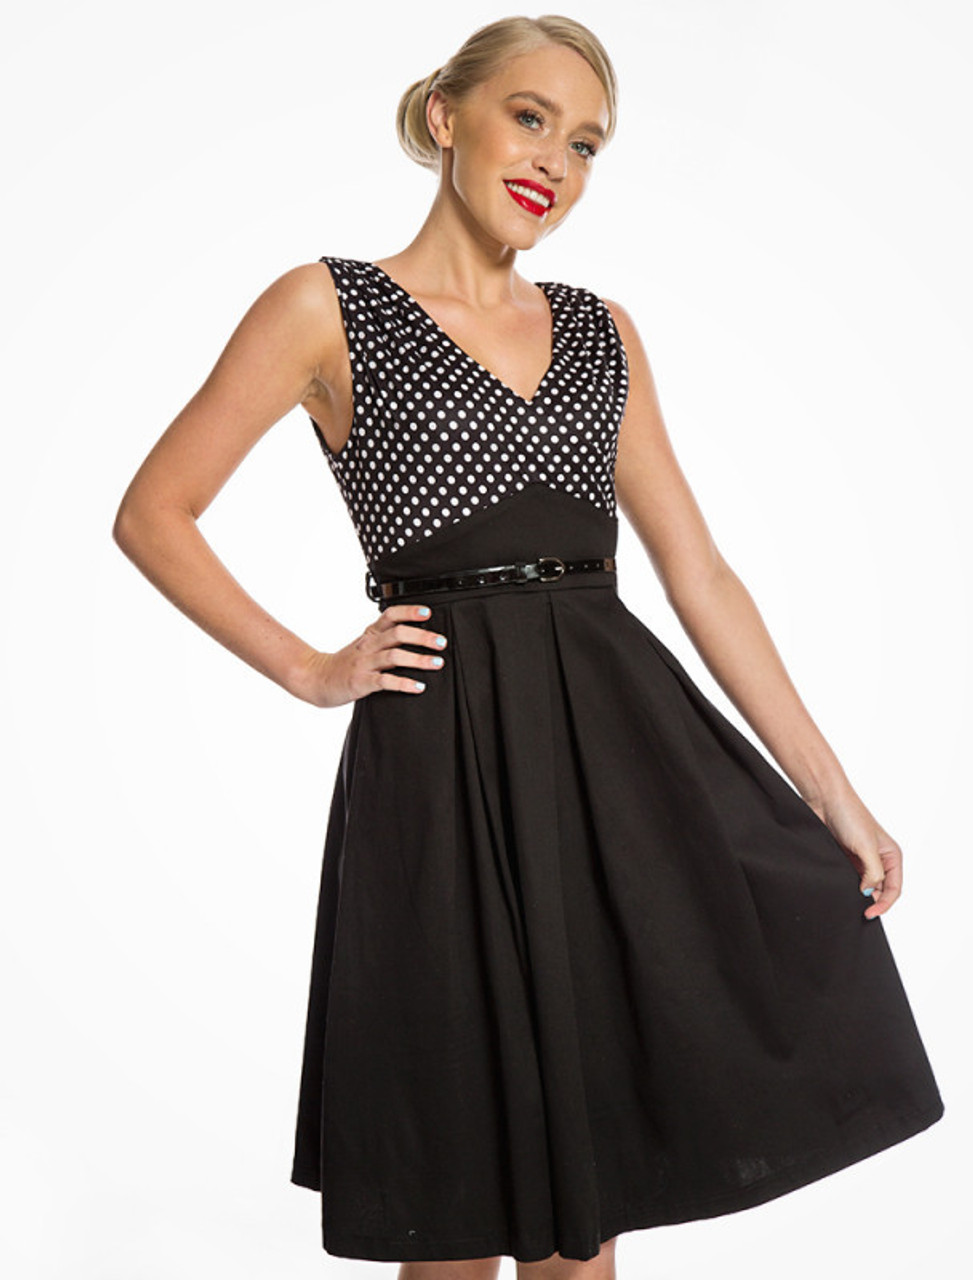 406e5c6e36f6 Lindy Bop Valerie Black and White Polka Dot Swing Dress - Suicide ...